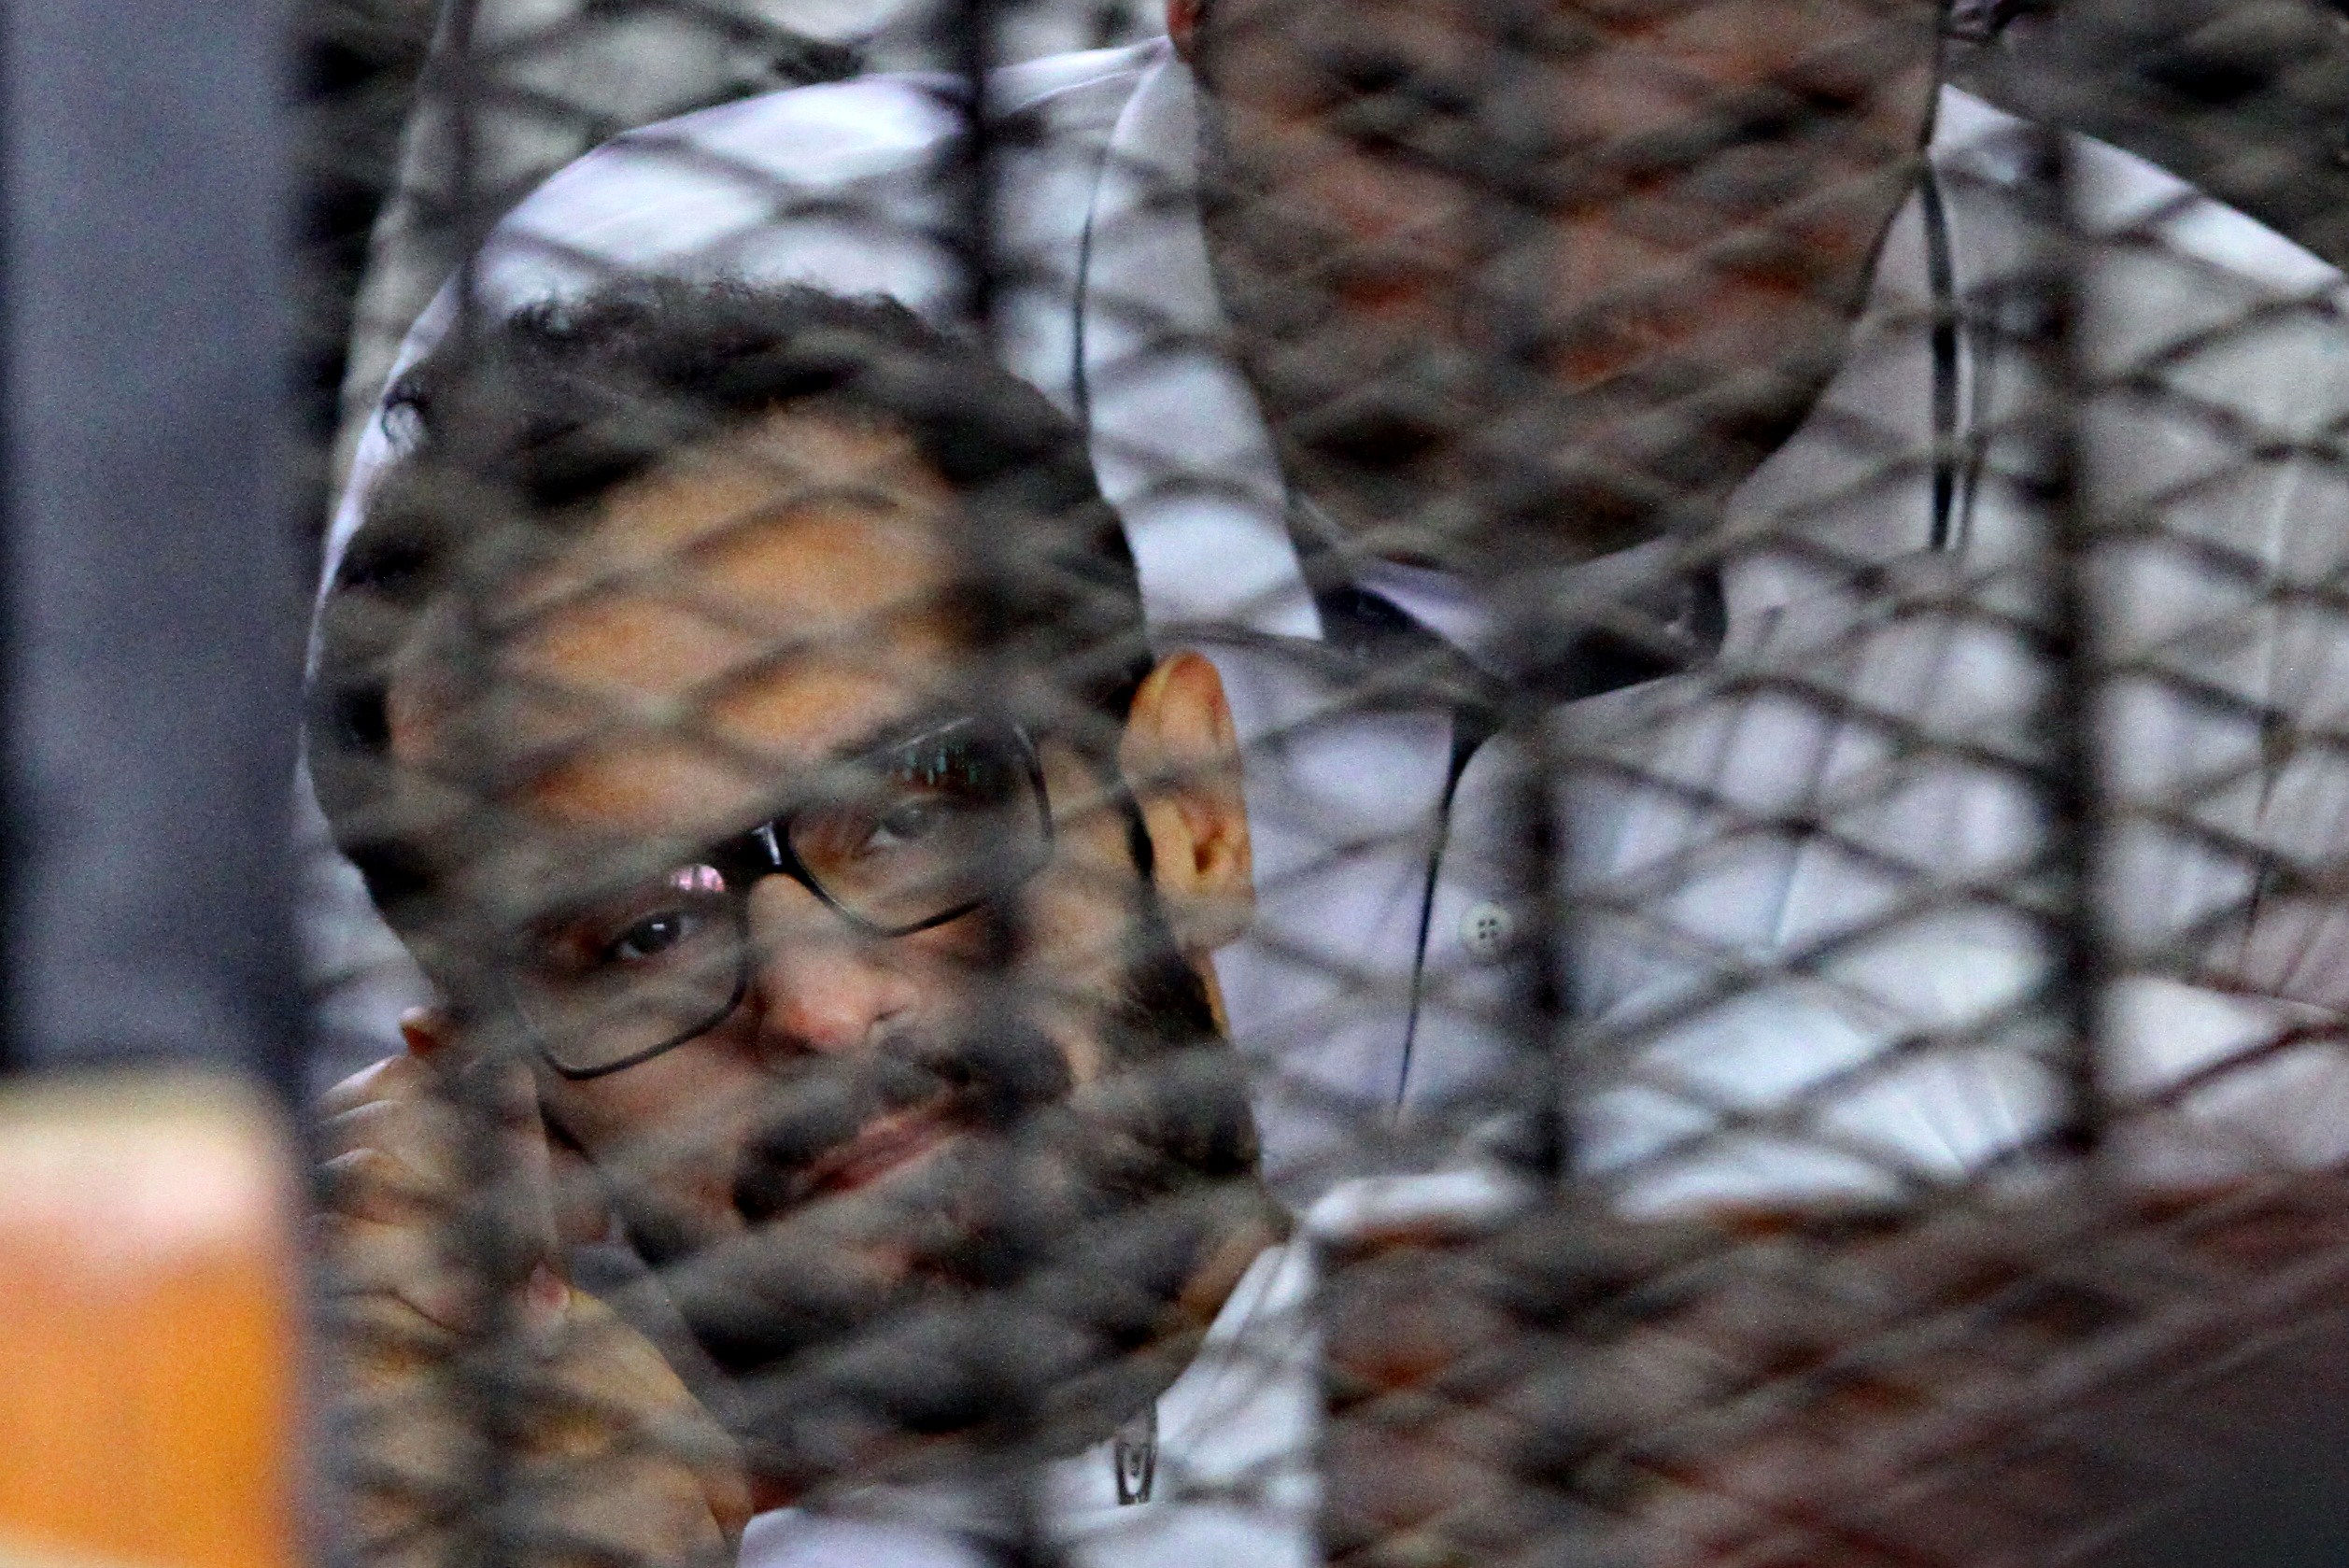 Mohamed Soltan, the imprisoned son of prominent Muslim Brotherhood leader Salah Soltan, was admitted to the intensive care unit of the Qasr El-Aini Hospital on Tuesday night. (AFP PHOTO / STR)